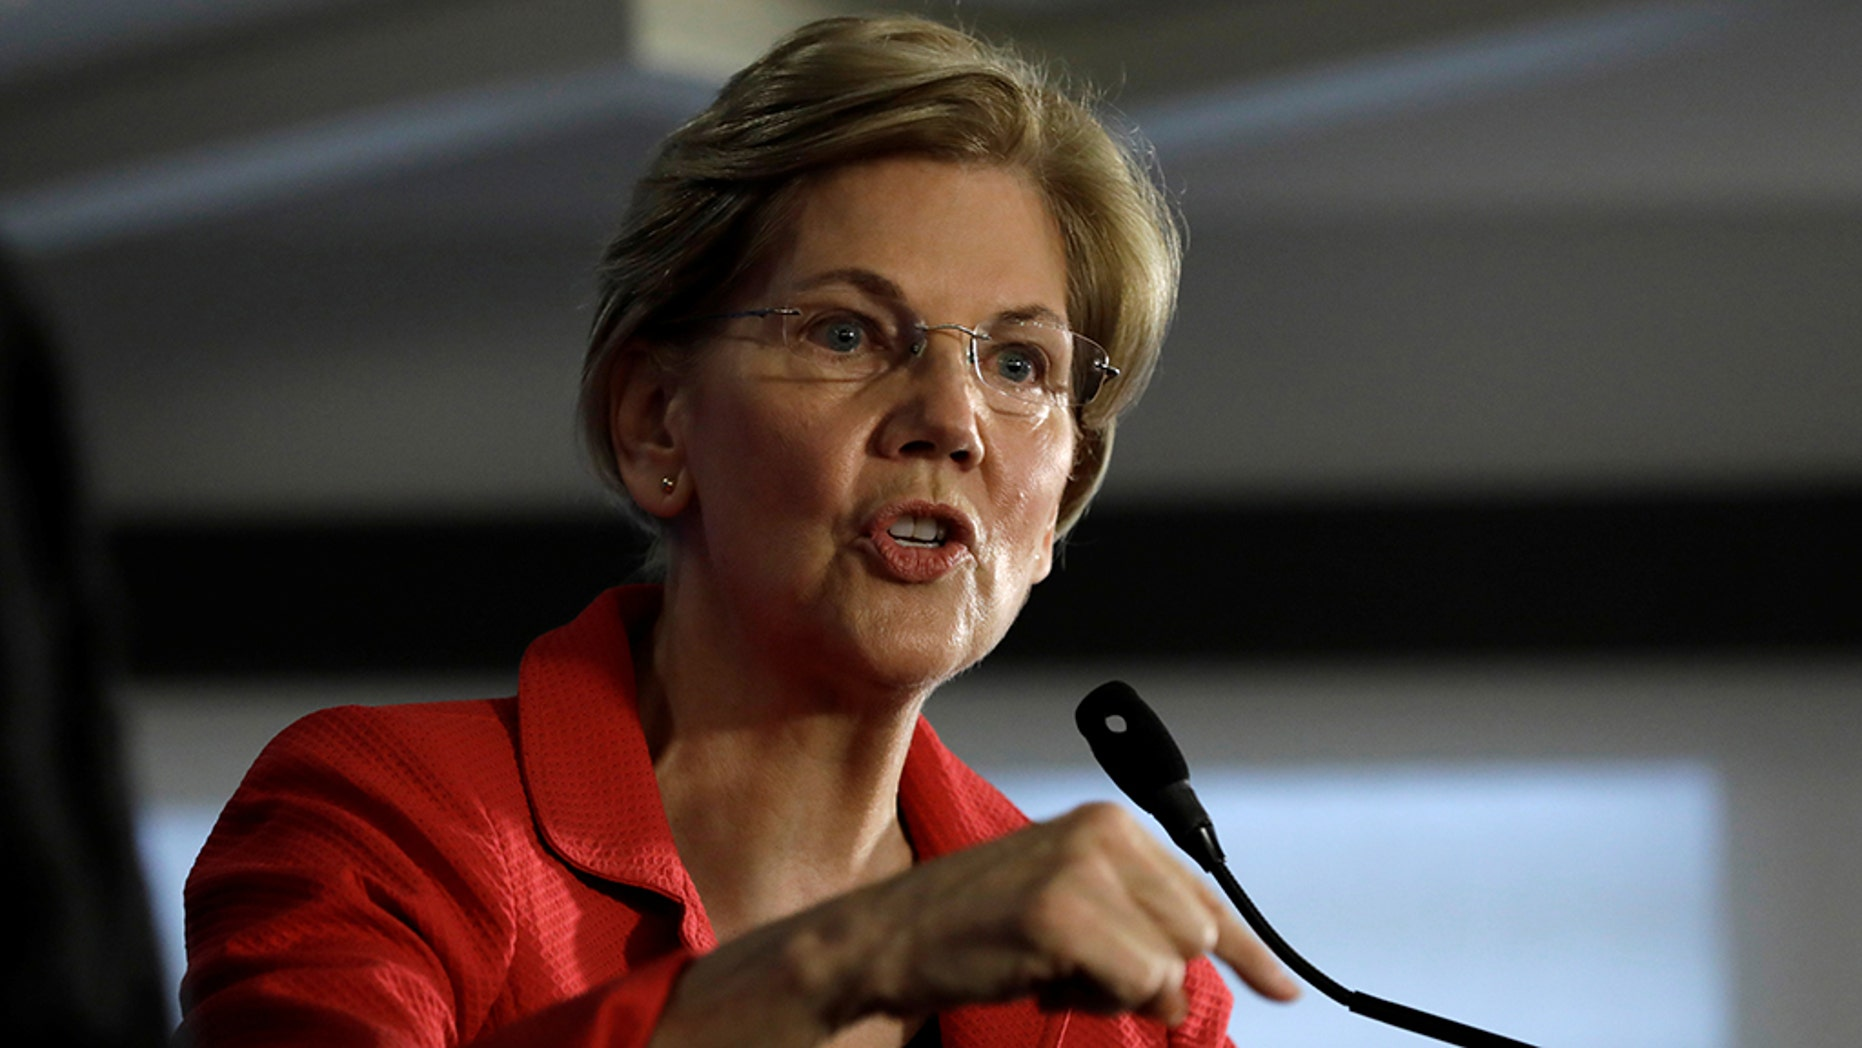 Sen. Elizabeth Warren, seen here in August 2018, gave her thoughts on the Trump administration's recent moves.